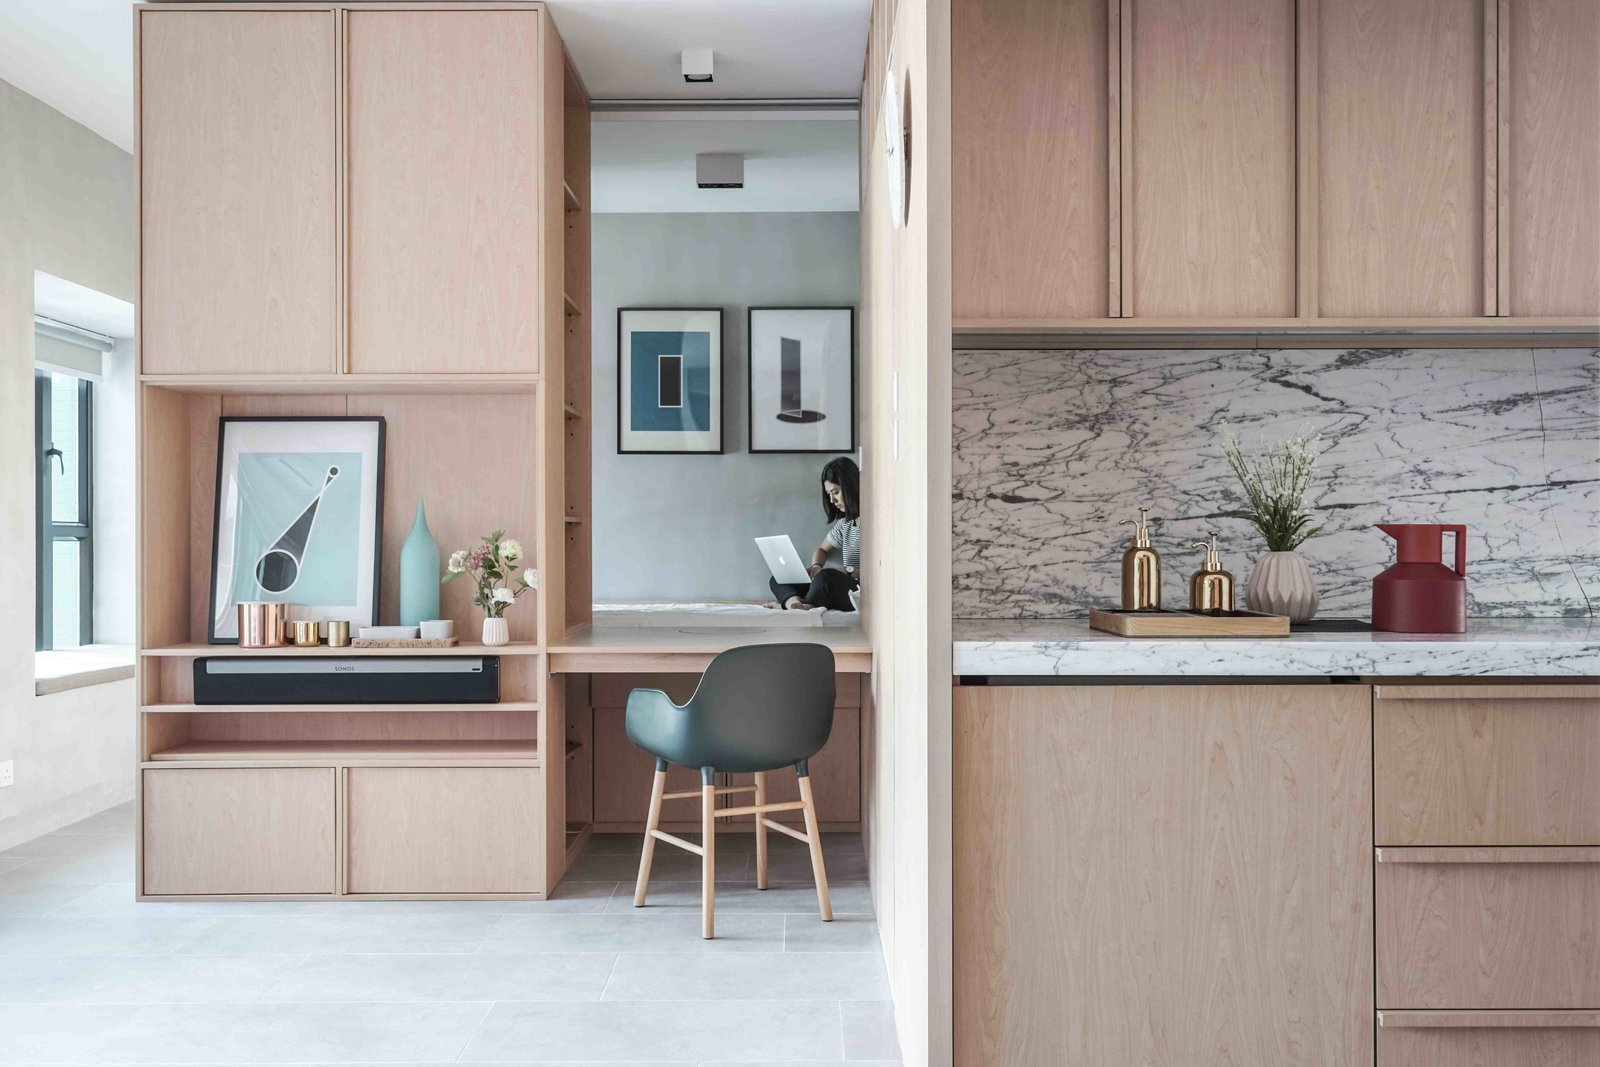 Office, Desk, Storage, Chair, and Shelves Inspired by modern Japanese minimalism, Hong Kong practice JAAK demolished the walls of this two-bedroom apartment and remodelled it into a studio with an  Best Photos from 10 Zen Homes That Champion Japanese Design